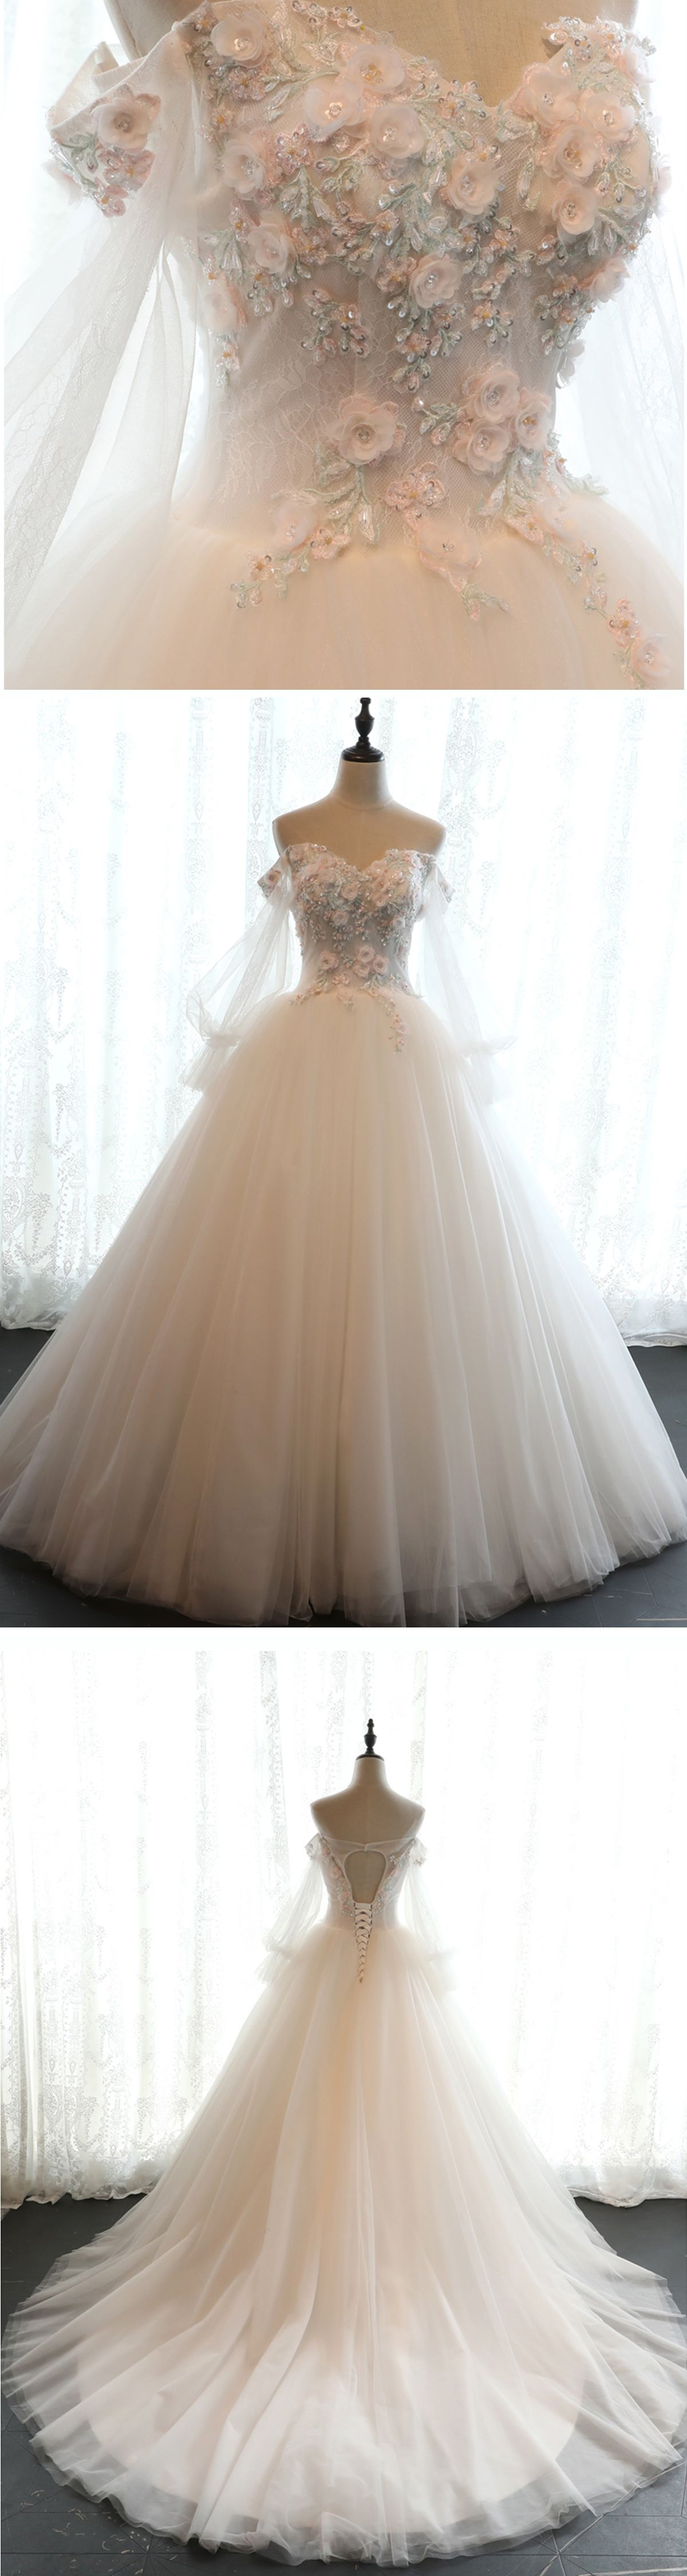 Beaded white tulle off shoulder wedding dress all things fantasy